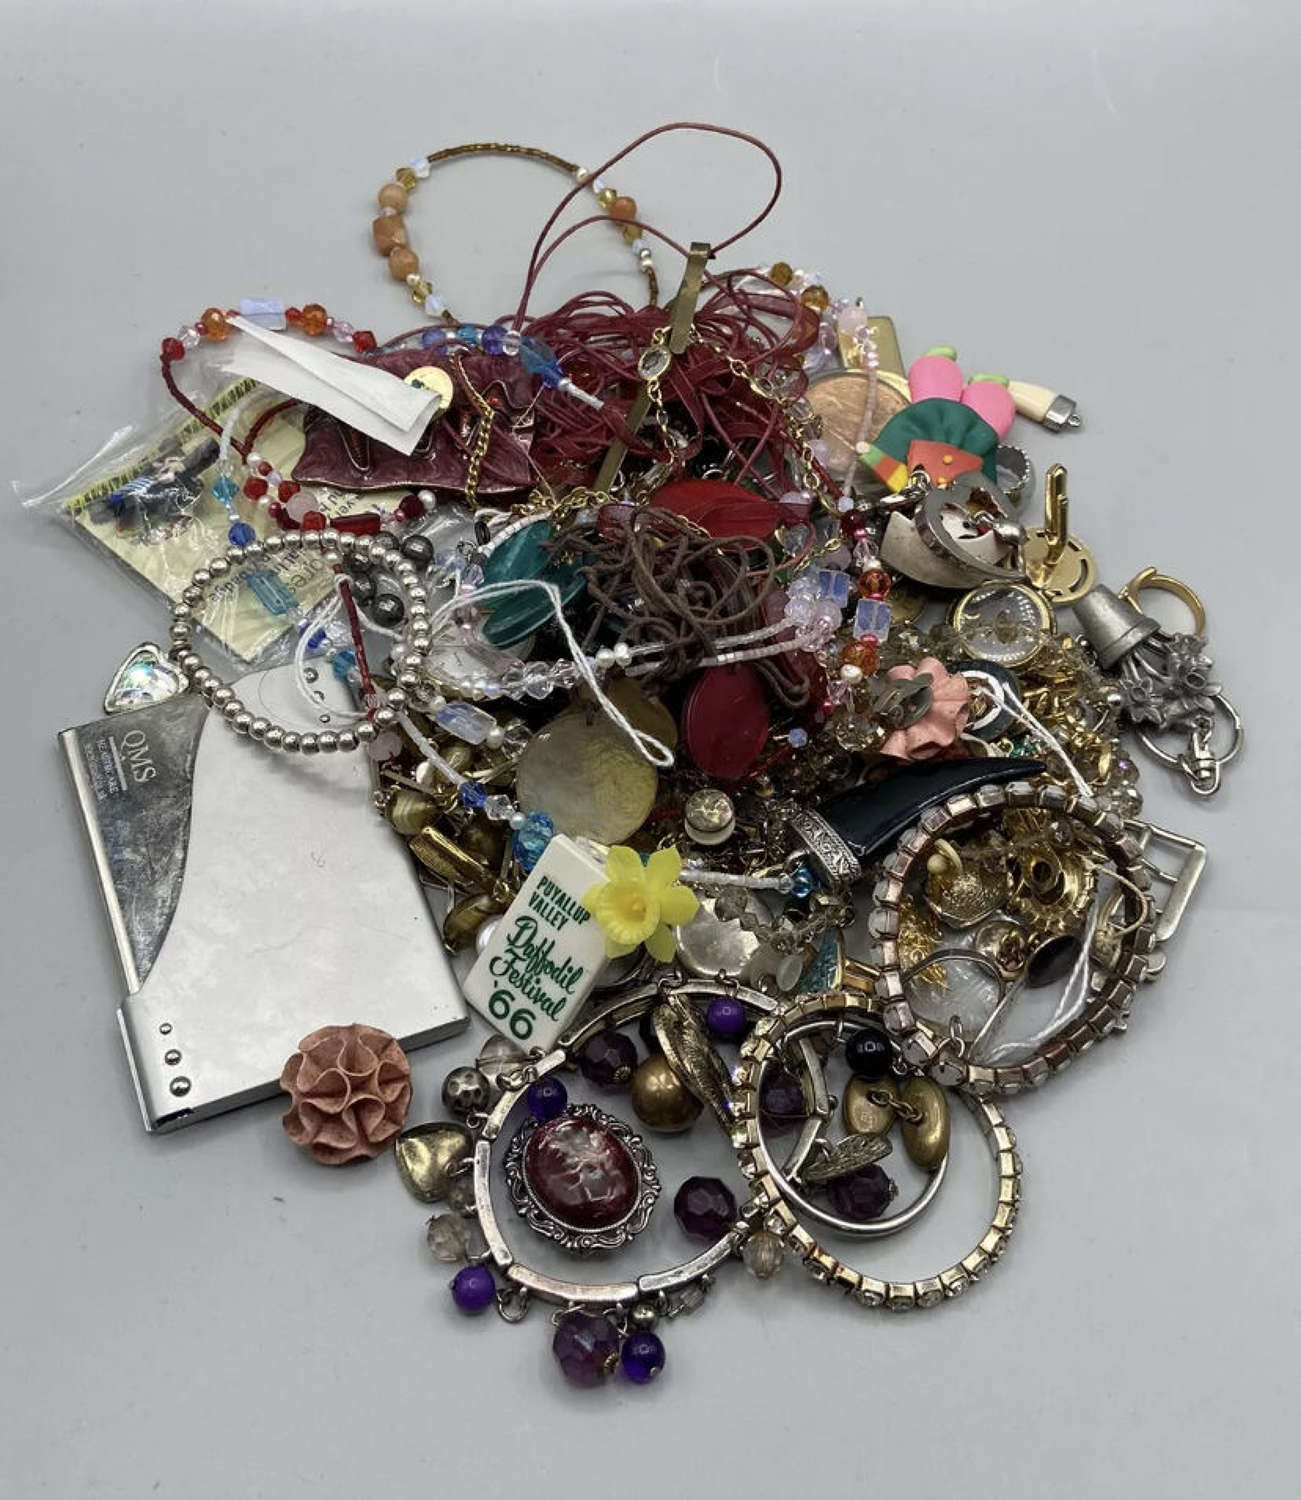 Vintage Costume Jewellery Brooches Necklaces Lot Daffodil 66 Festival